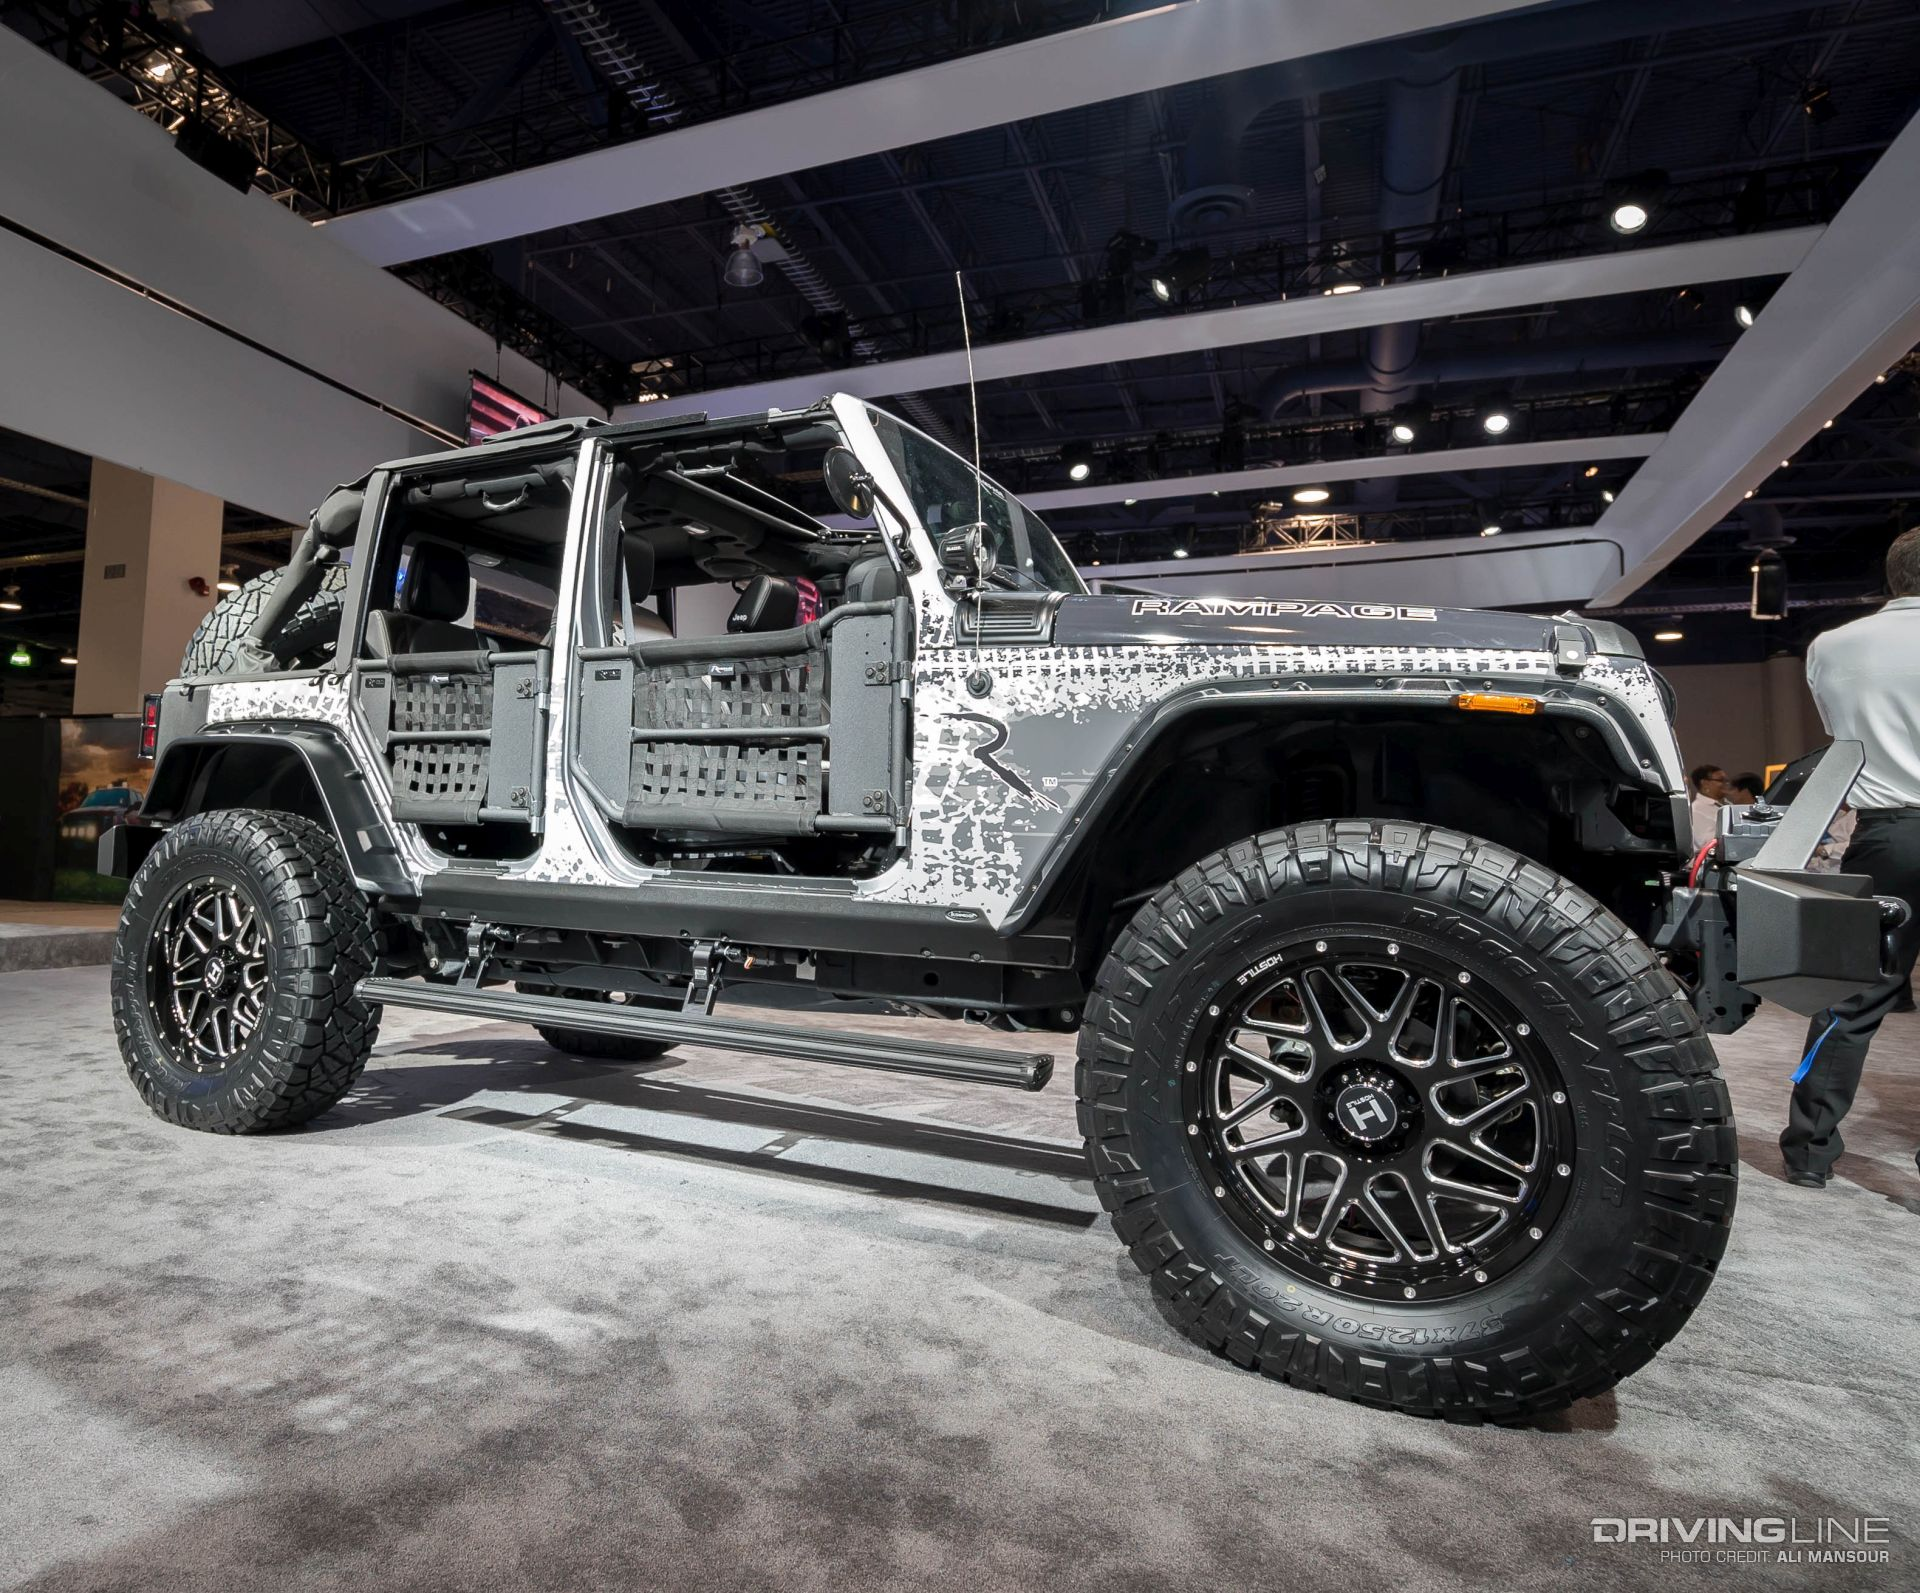 188595 together with Jeep Renegade 12 in addition Jeep Renegade Desert Hawk 5 additionally 5 Things To Know About The Jeep Grand Cherokee Altitude also Mercedesbenz W140 Cl500 In Tuning Koenig. on jeep wrangler fun